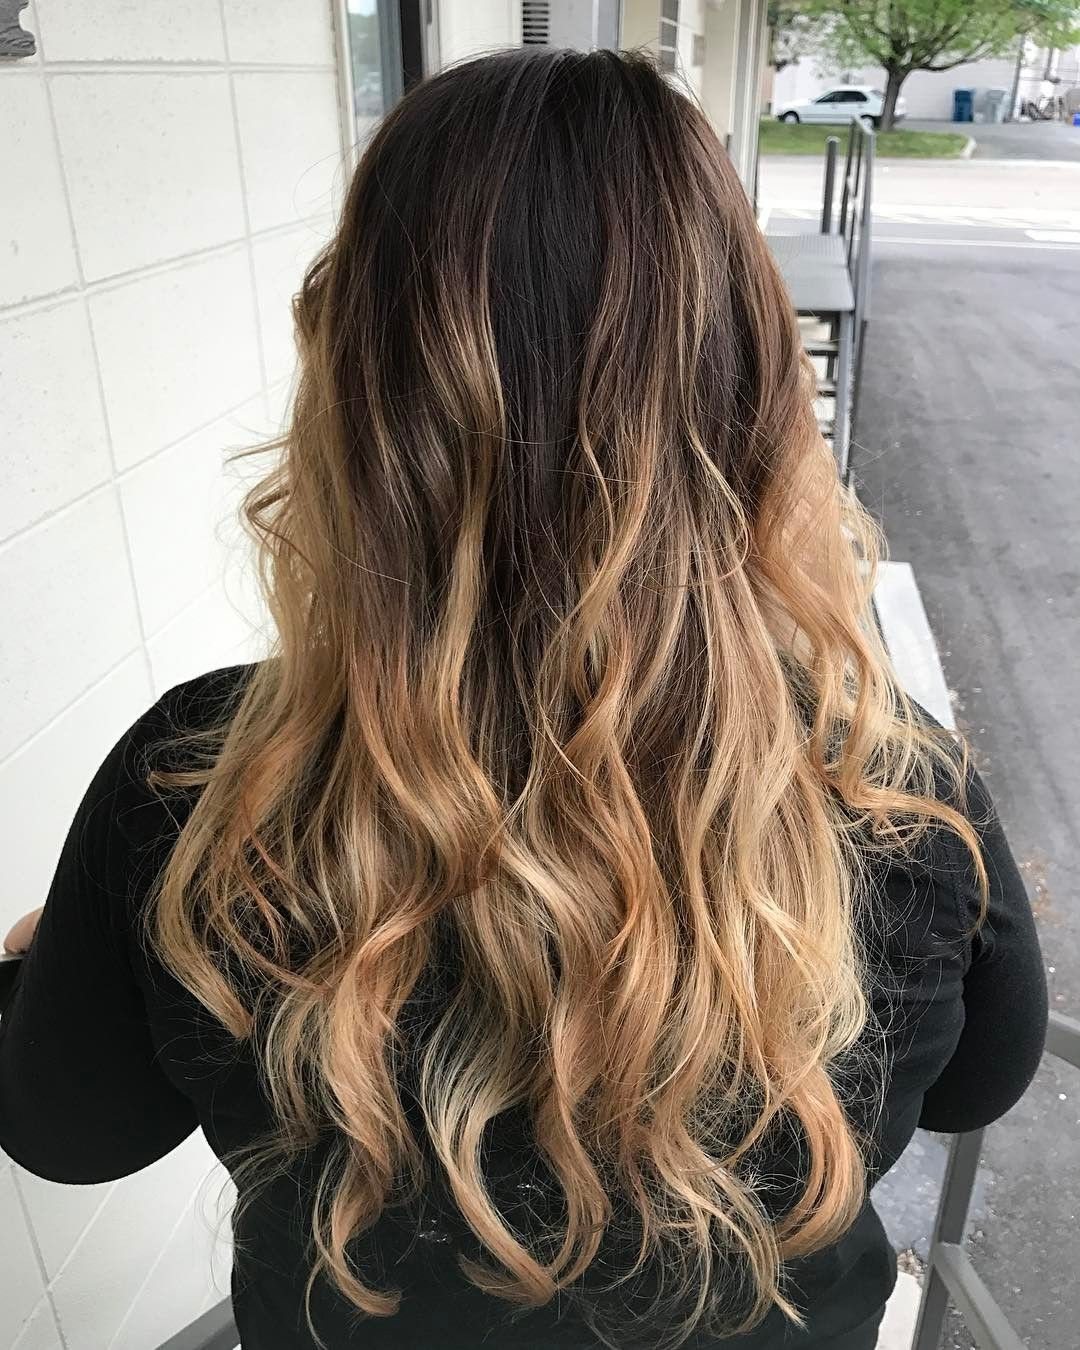 Ombre Lage I Love Mixing Techniques Hit Ya Girl Up For